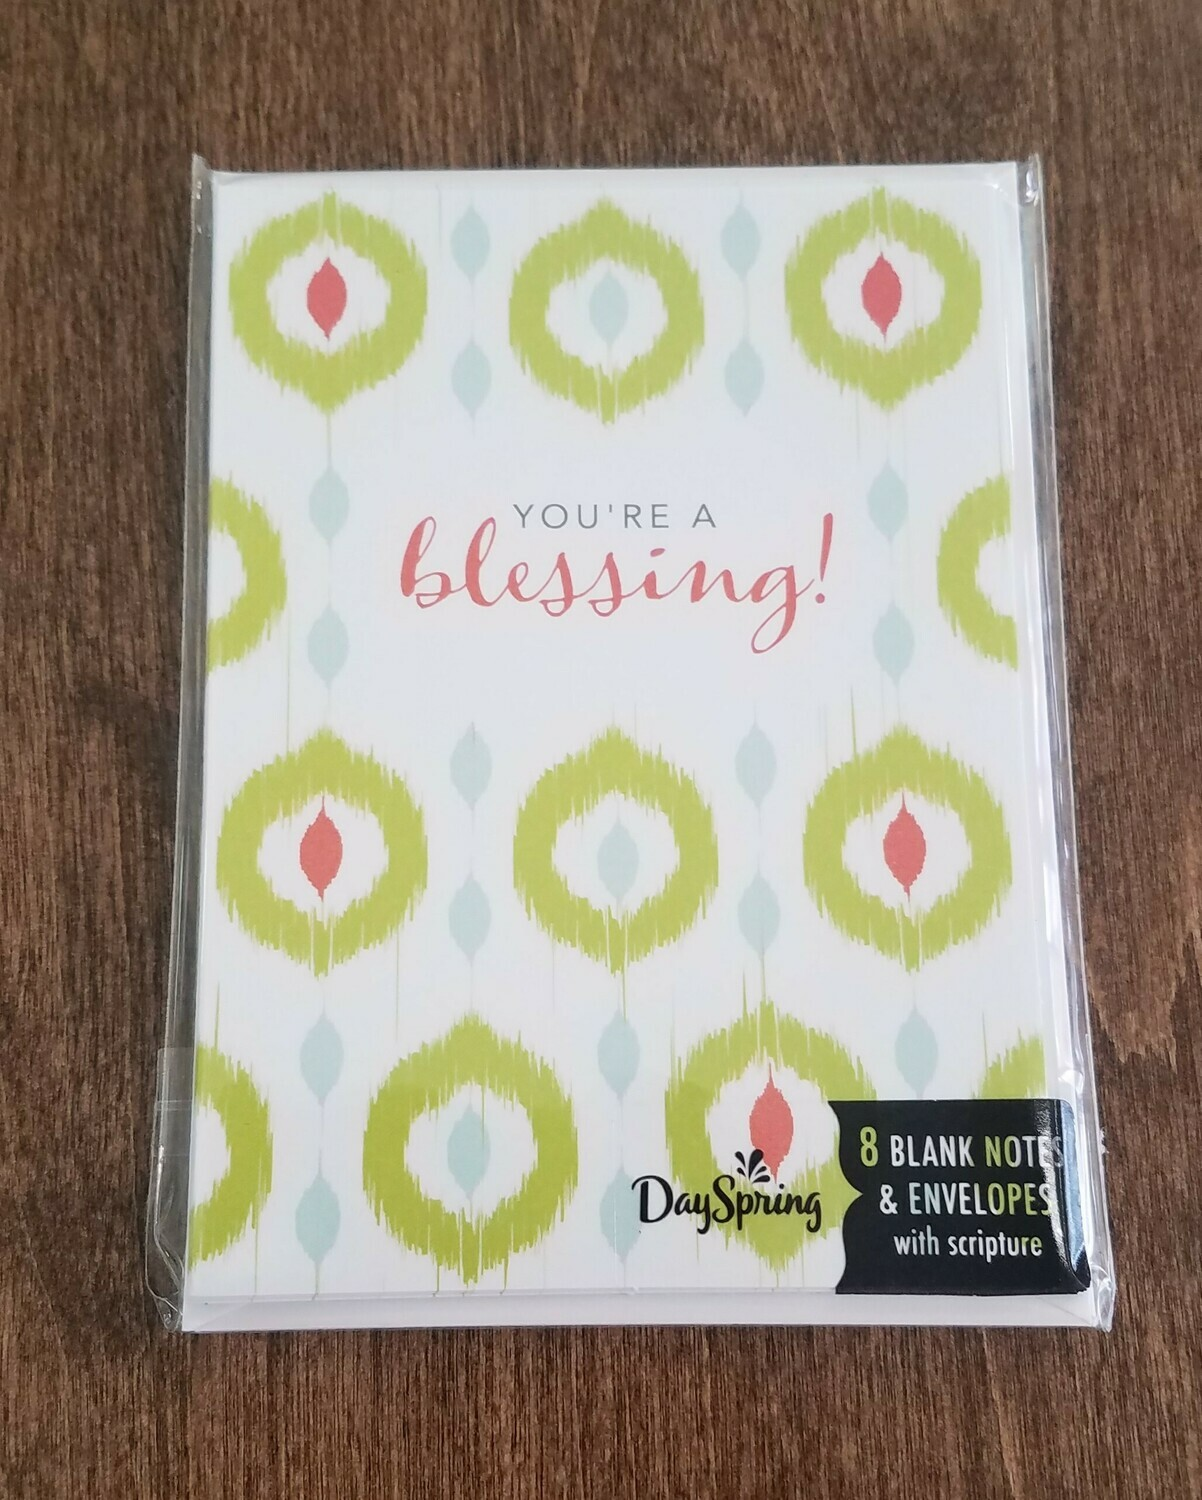 You're a Blessing Card and Envelope Package